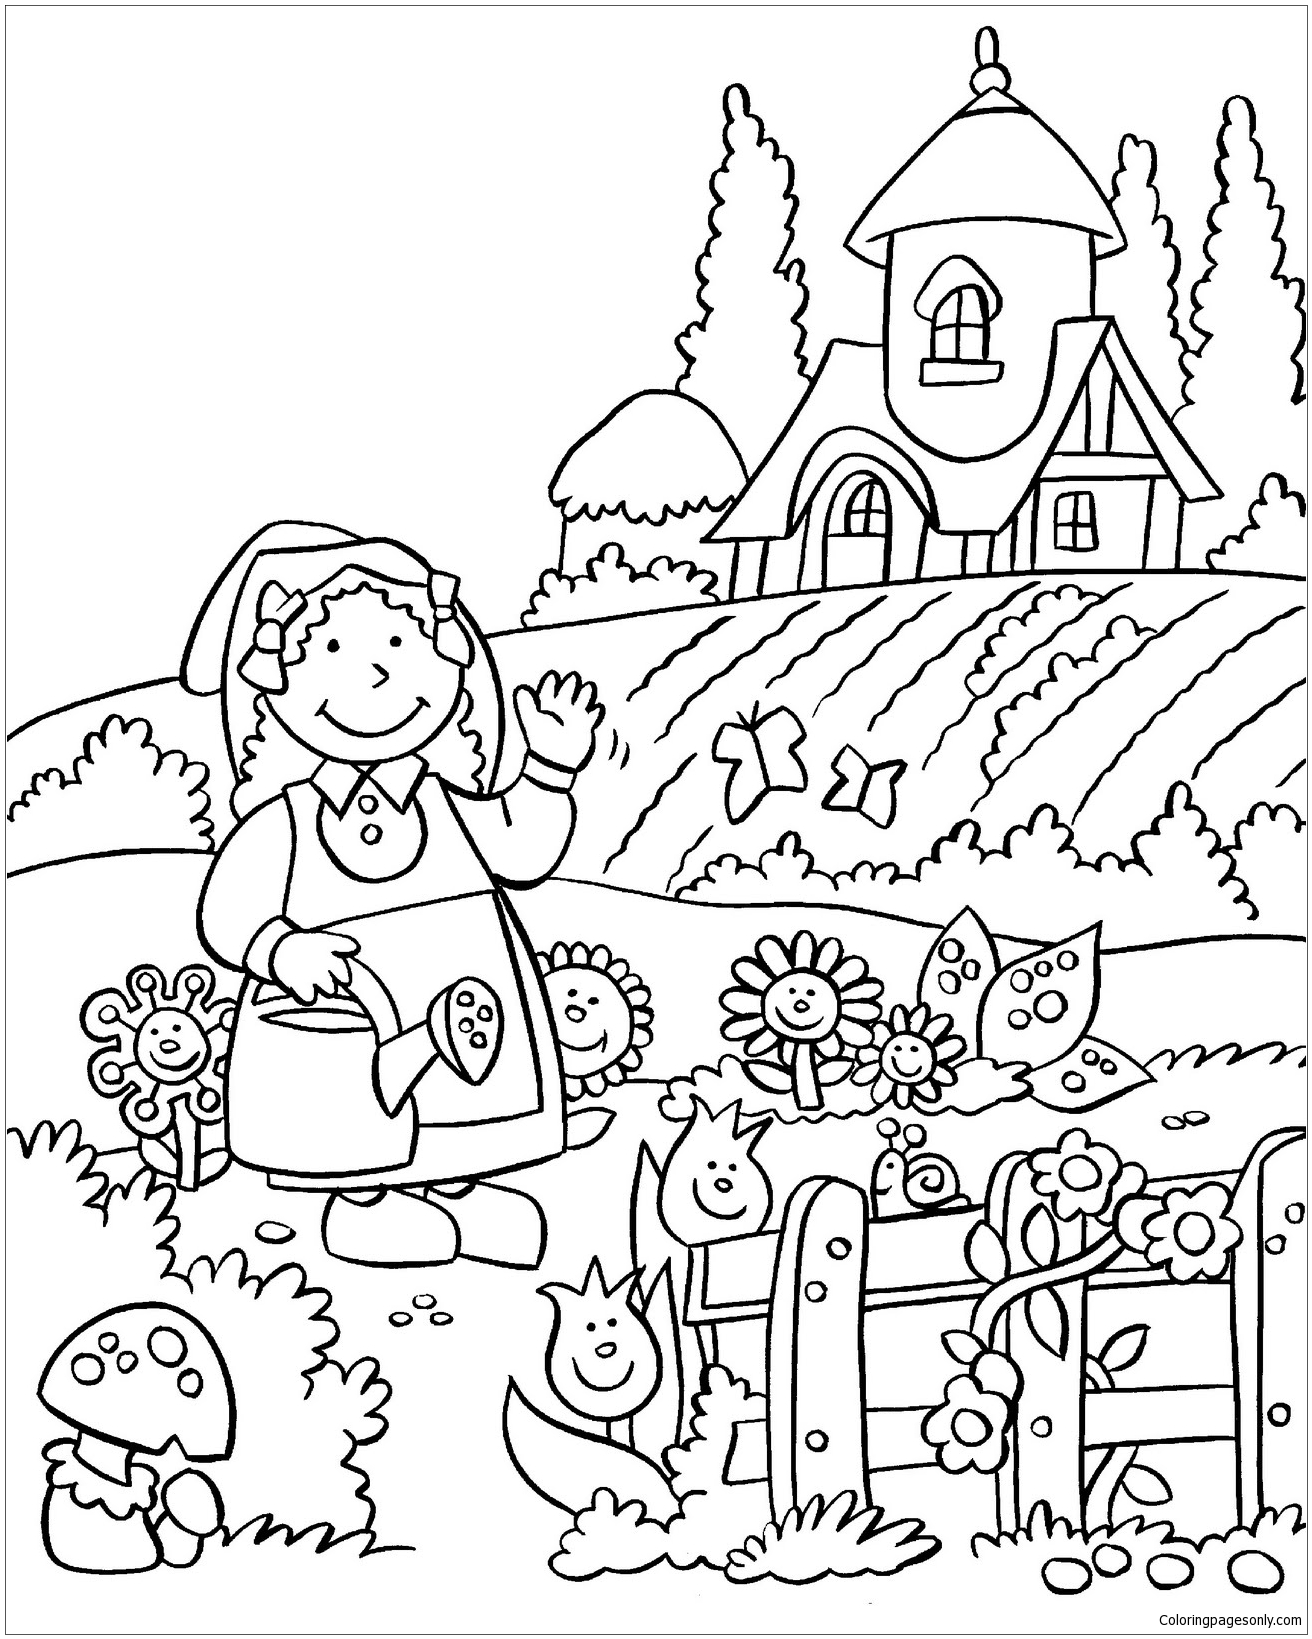 The Beautiful Flower Garden Coloring Page